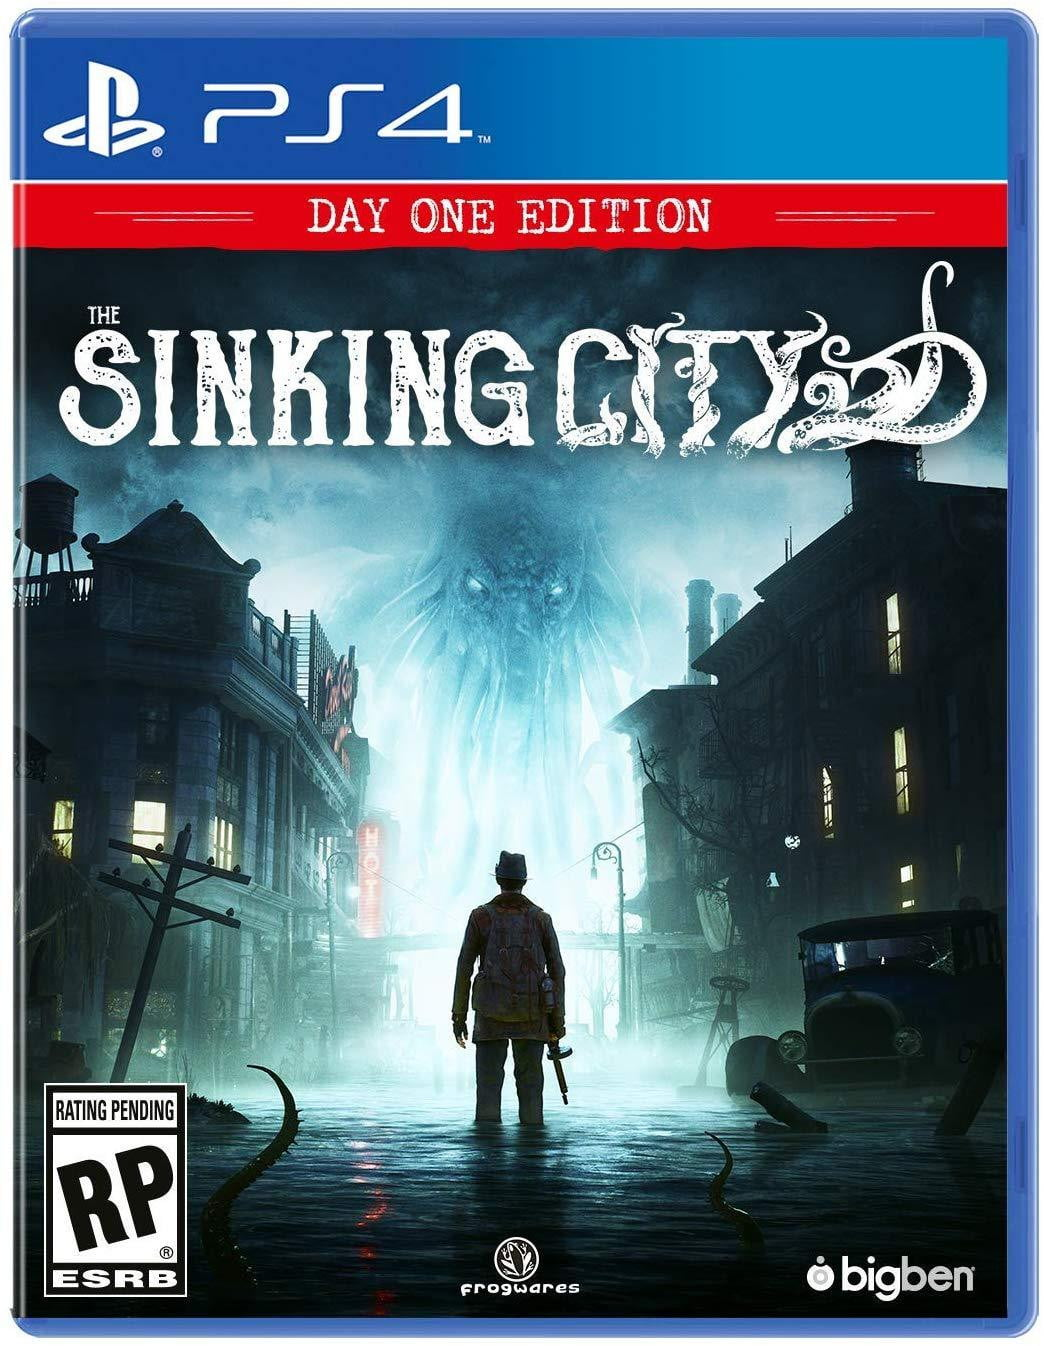 Buy The Sinking City (PS4) PS4 Game in Egypt - Shamy Stores